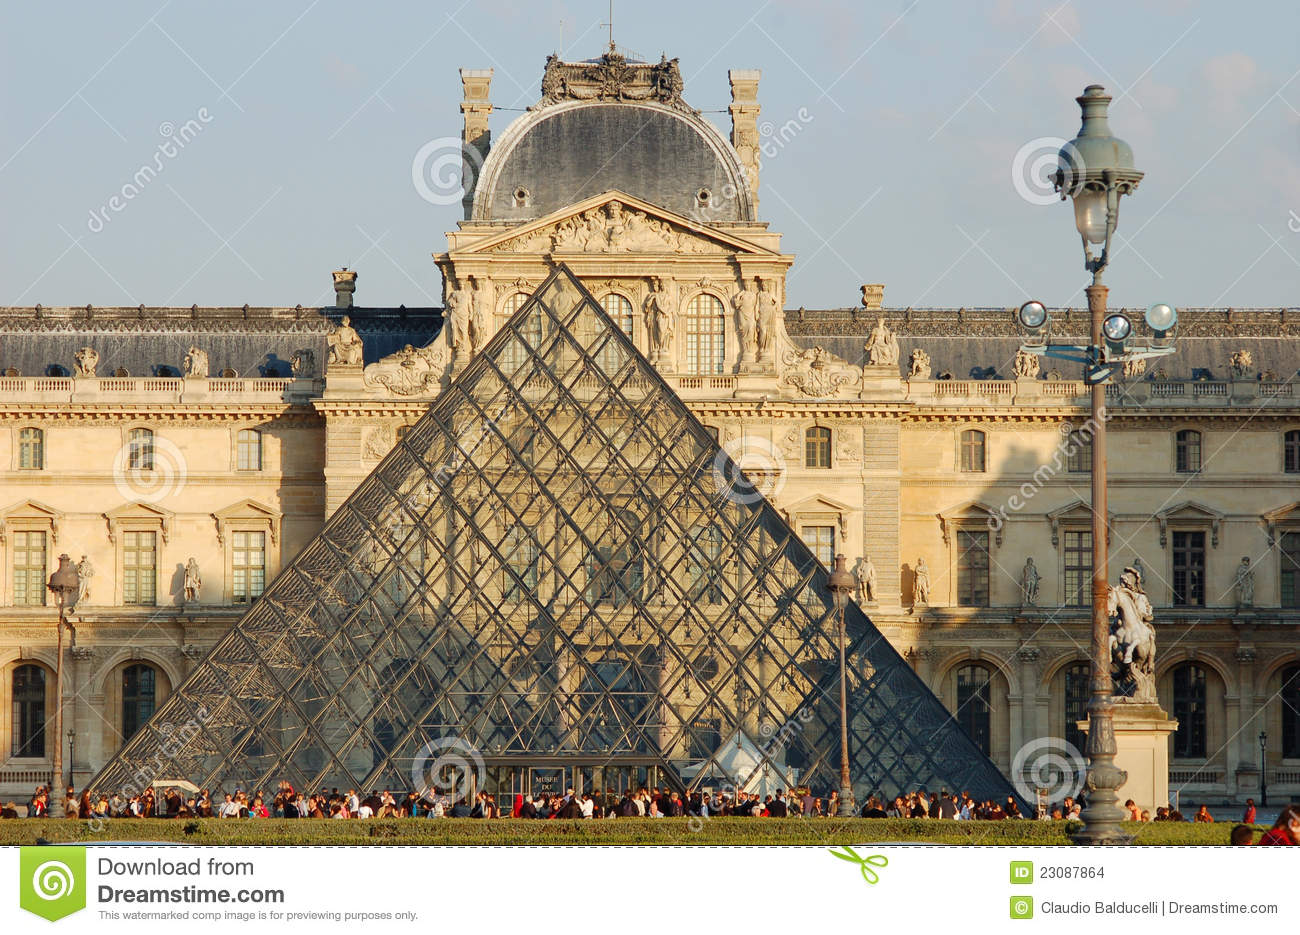 Entrance to the Louvre Museum in Paris